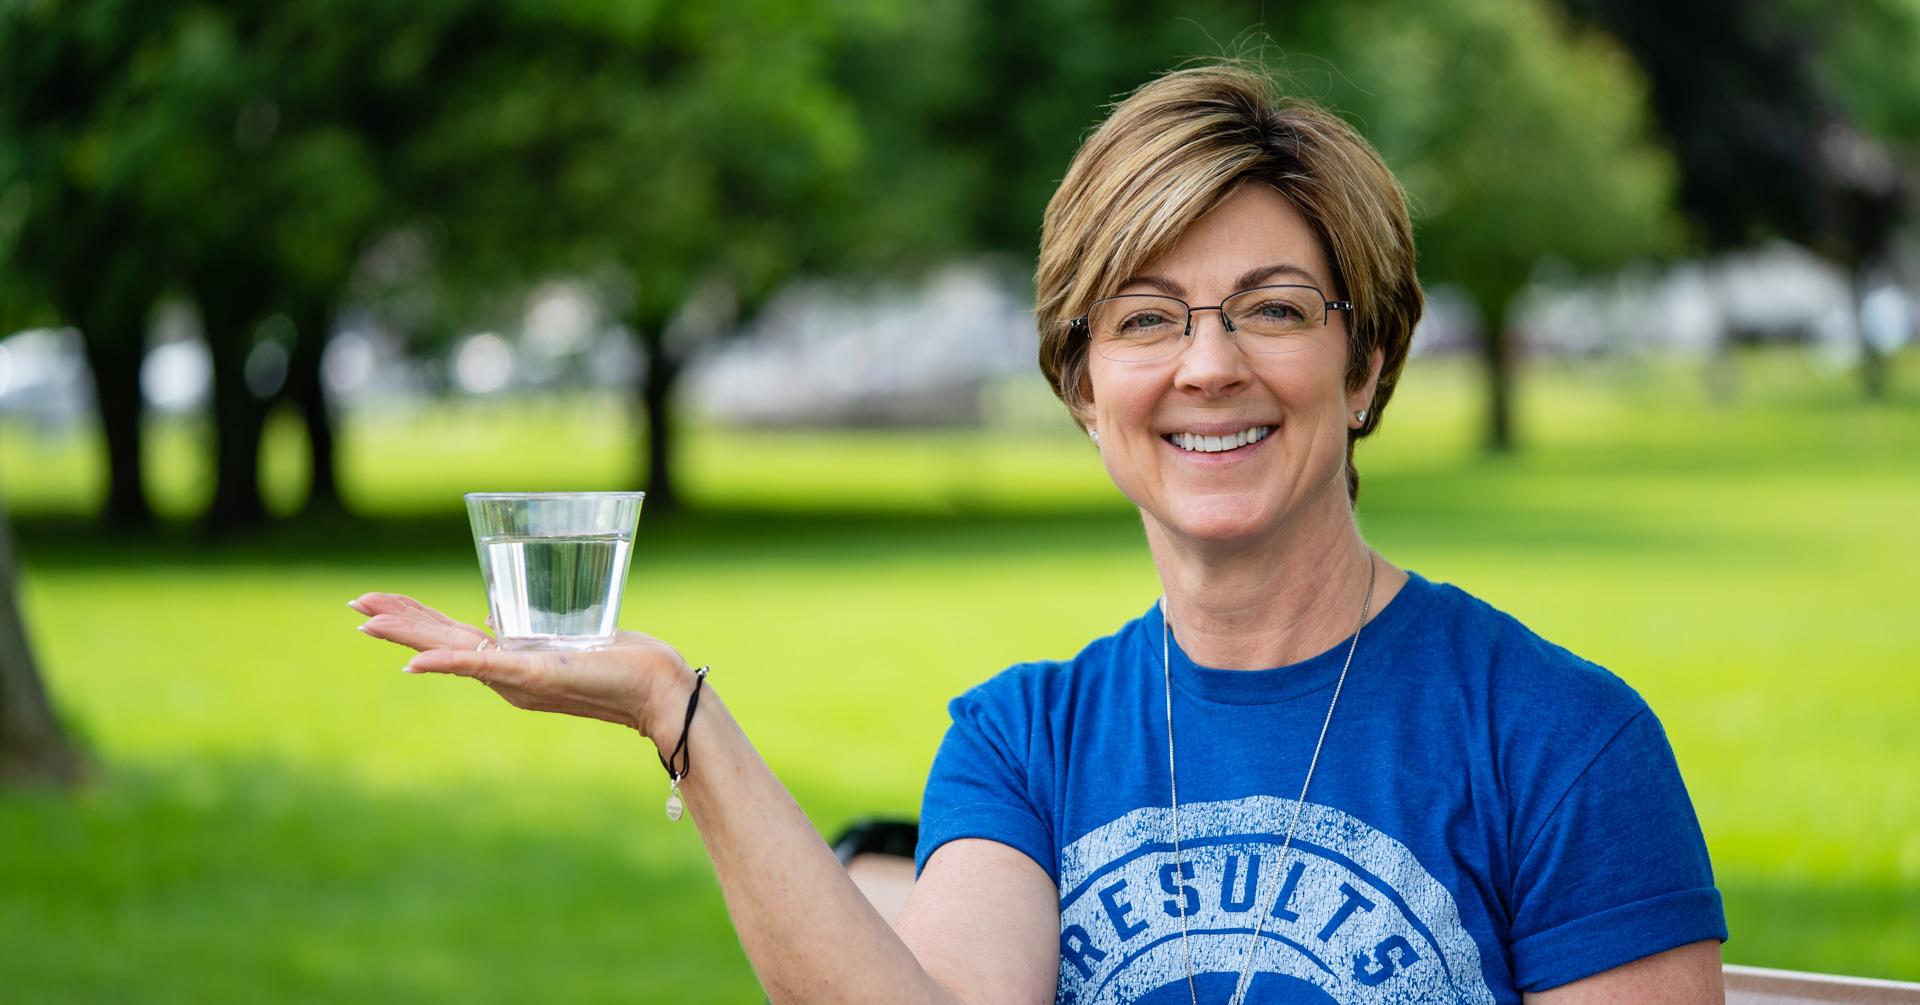 blog - cover photo - nutrition - nutrition level 1 - theresa holding cup of water facebook ad.jpg